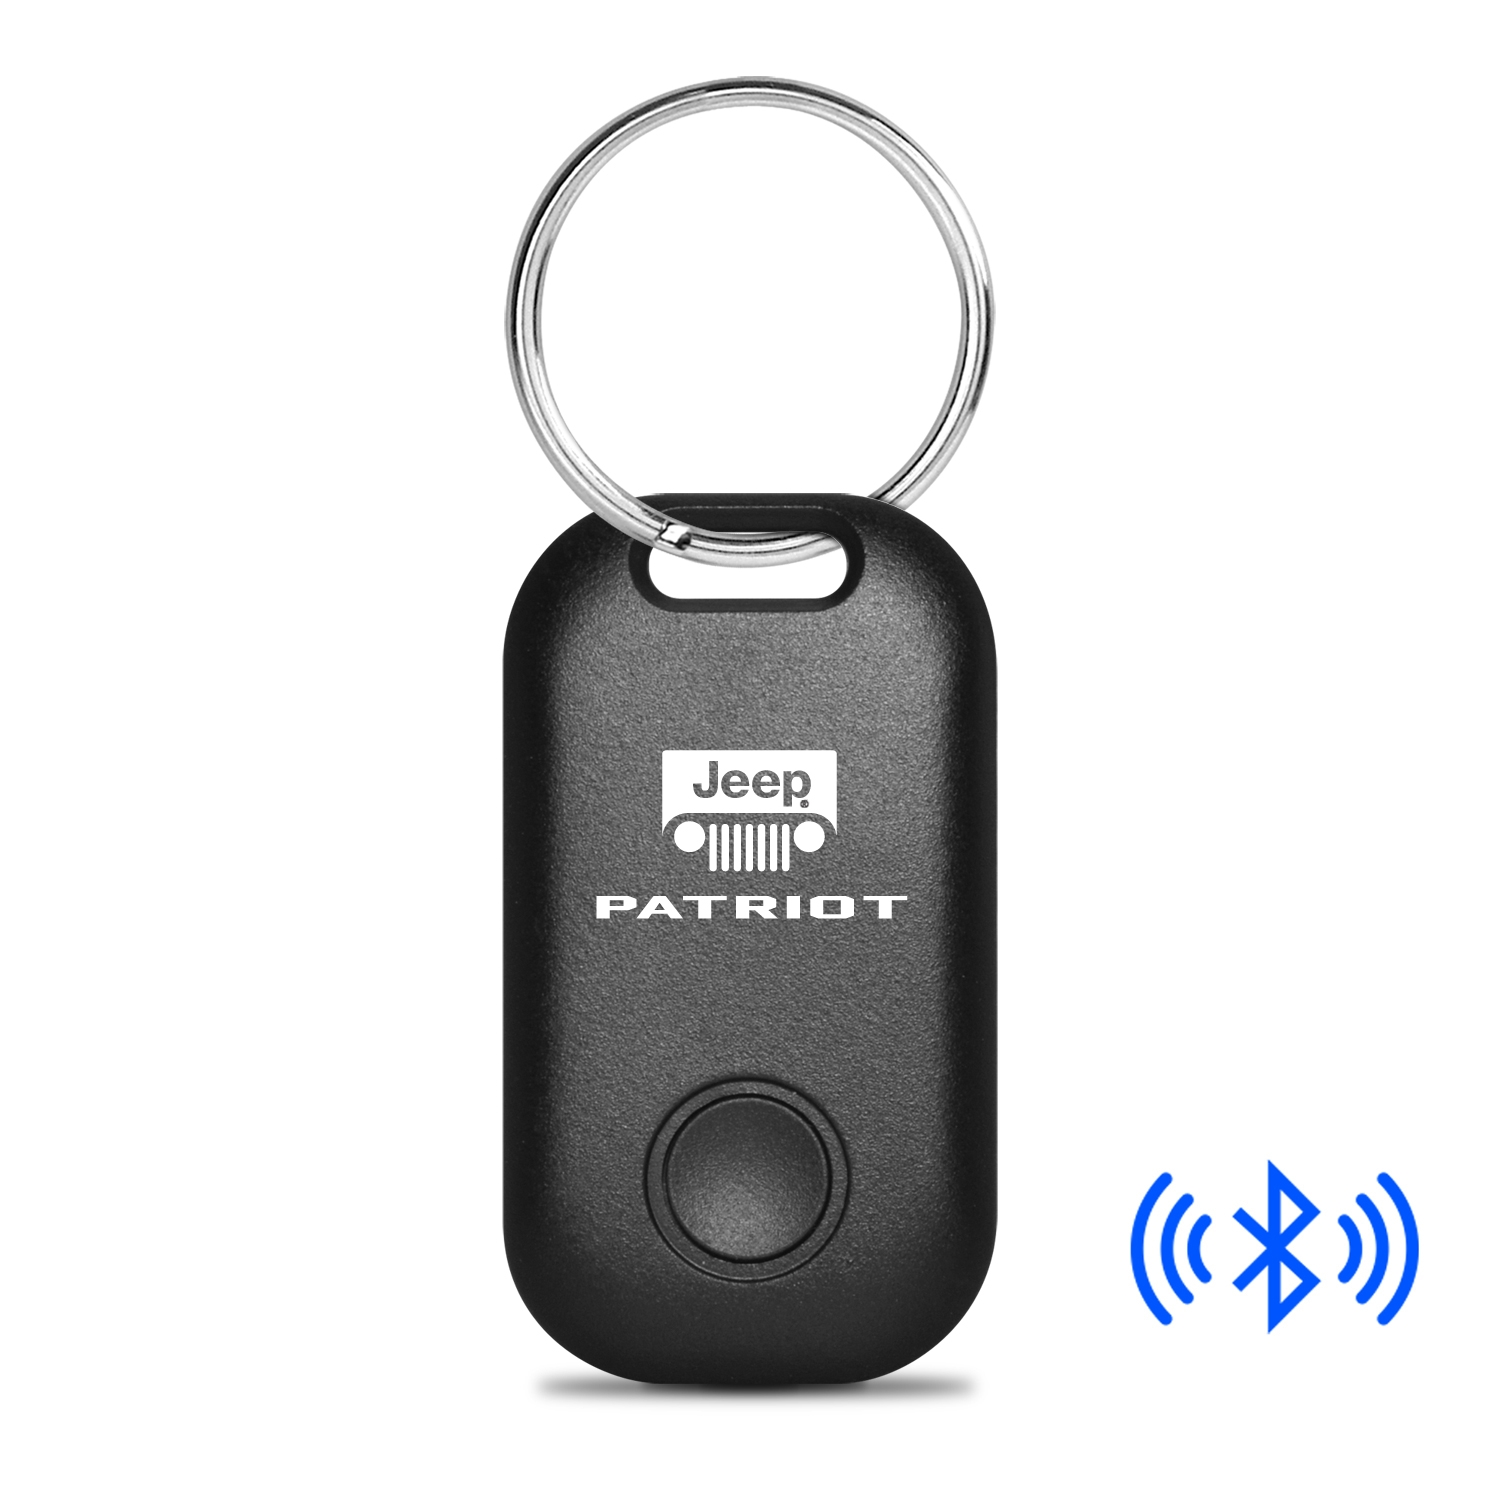 Jeep Patriot Bluetooth Smart Key Finder Black Key Chain